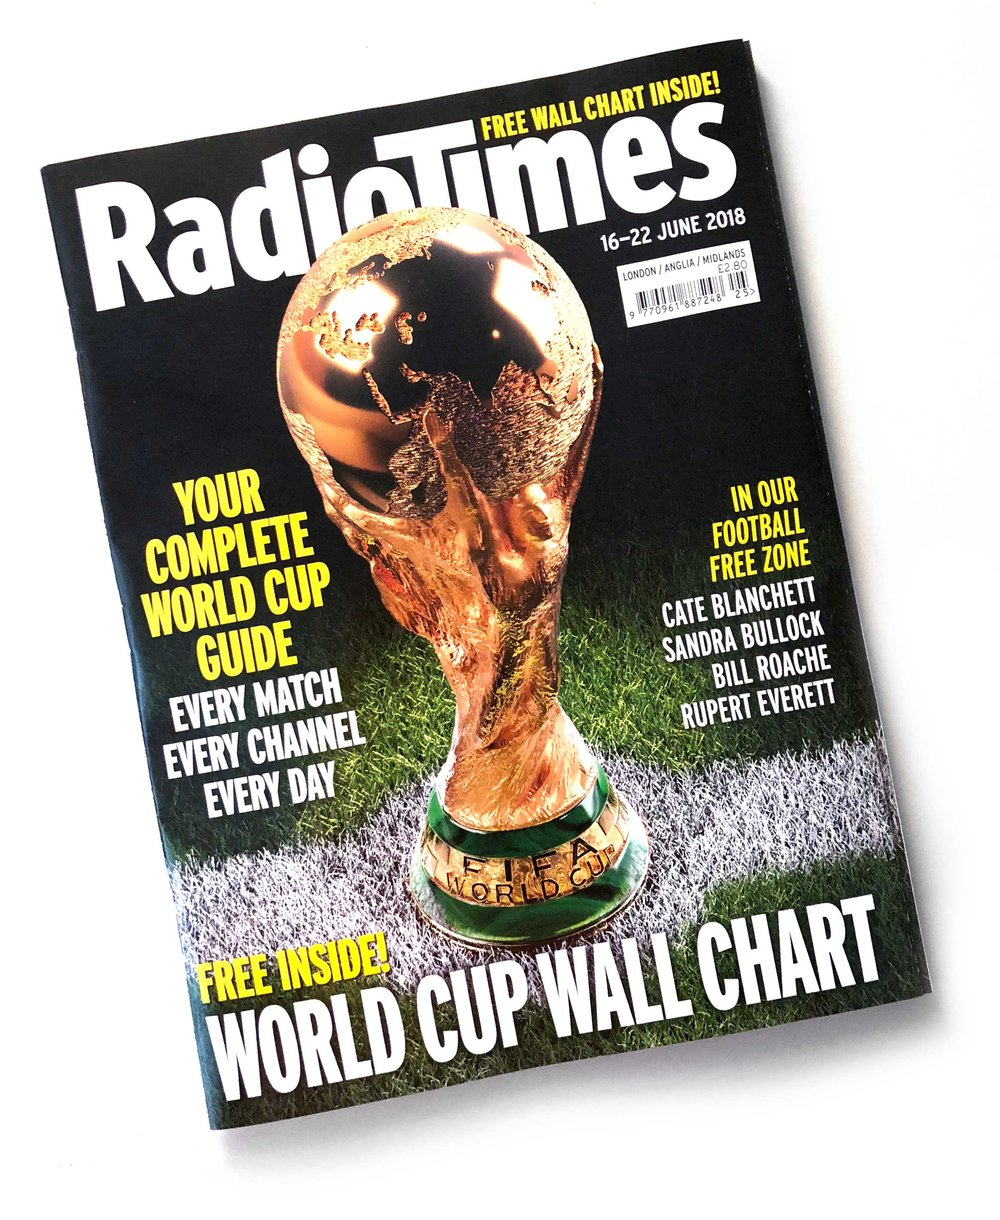 Radio-Times-World-Cup-Cover-2108.jpg